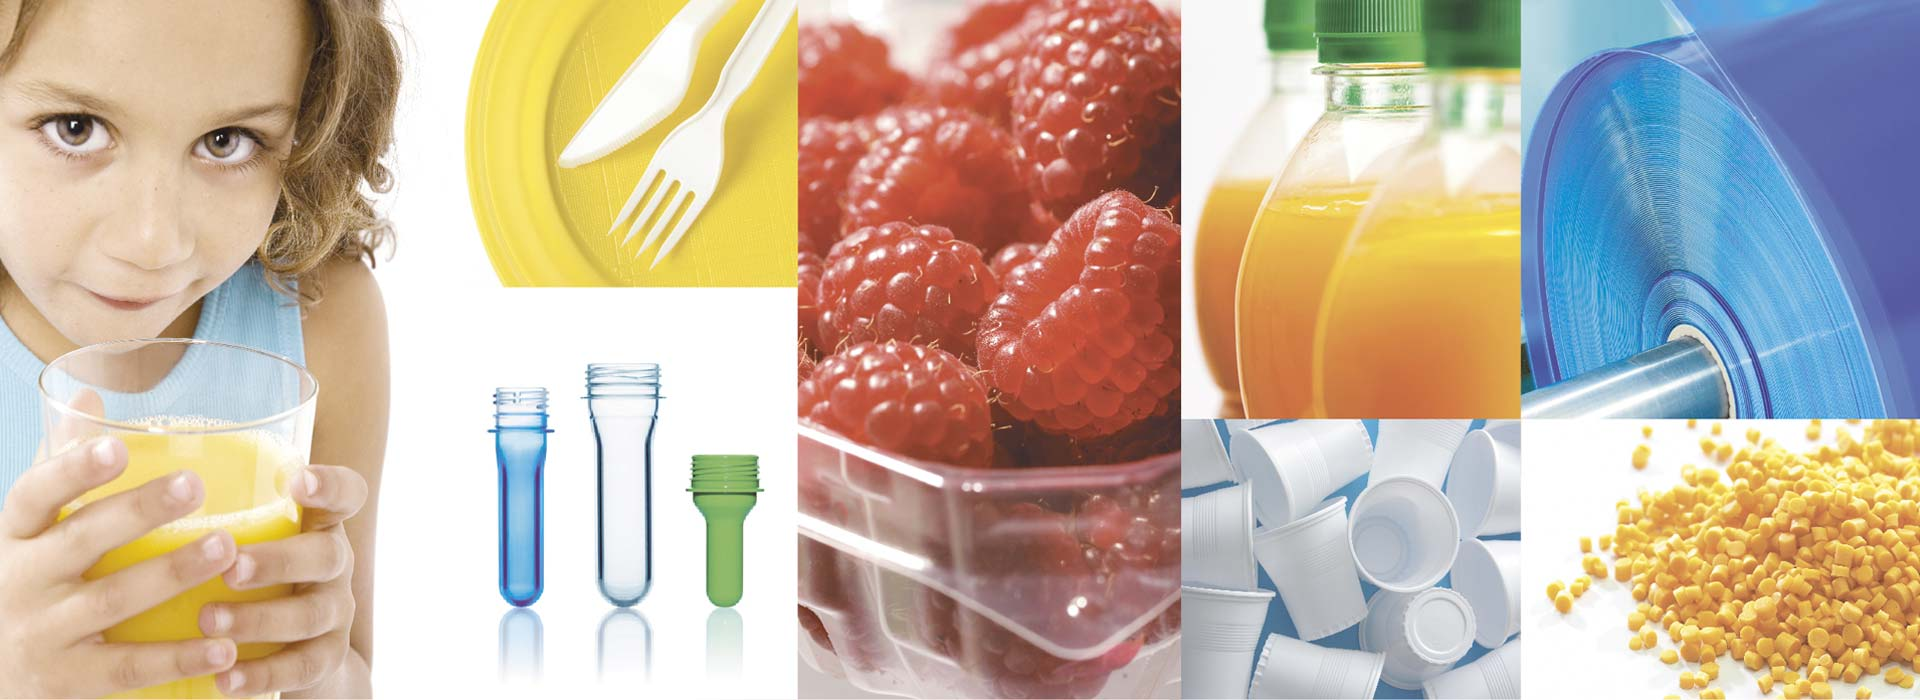 COMPREHENSIVE PACKAGING SOLUTIONS FOR INDUSTRIES